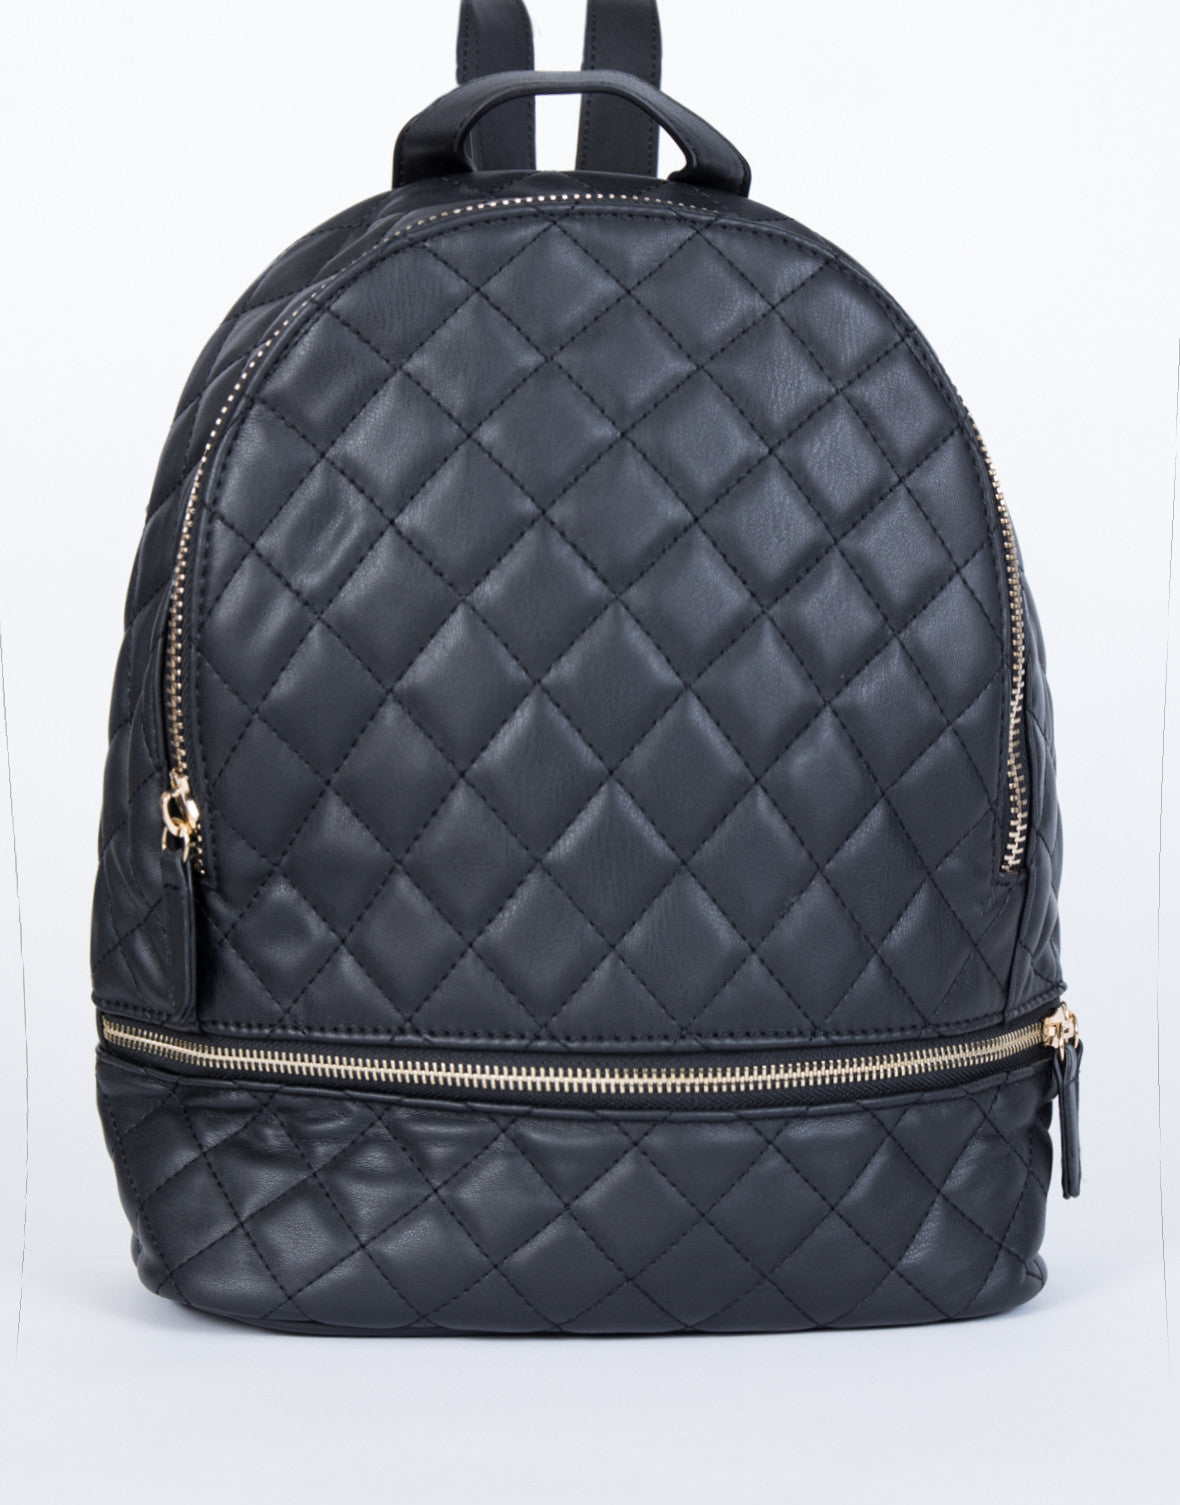 81b093d0a906 All Quilted in Backpack - Black Mini Backpack - Black Quilted ...